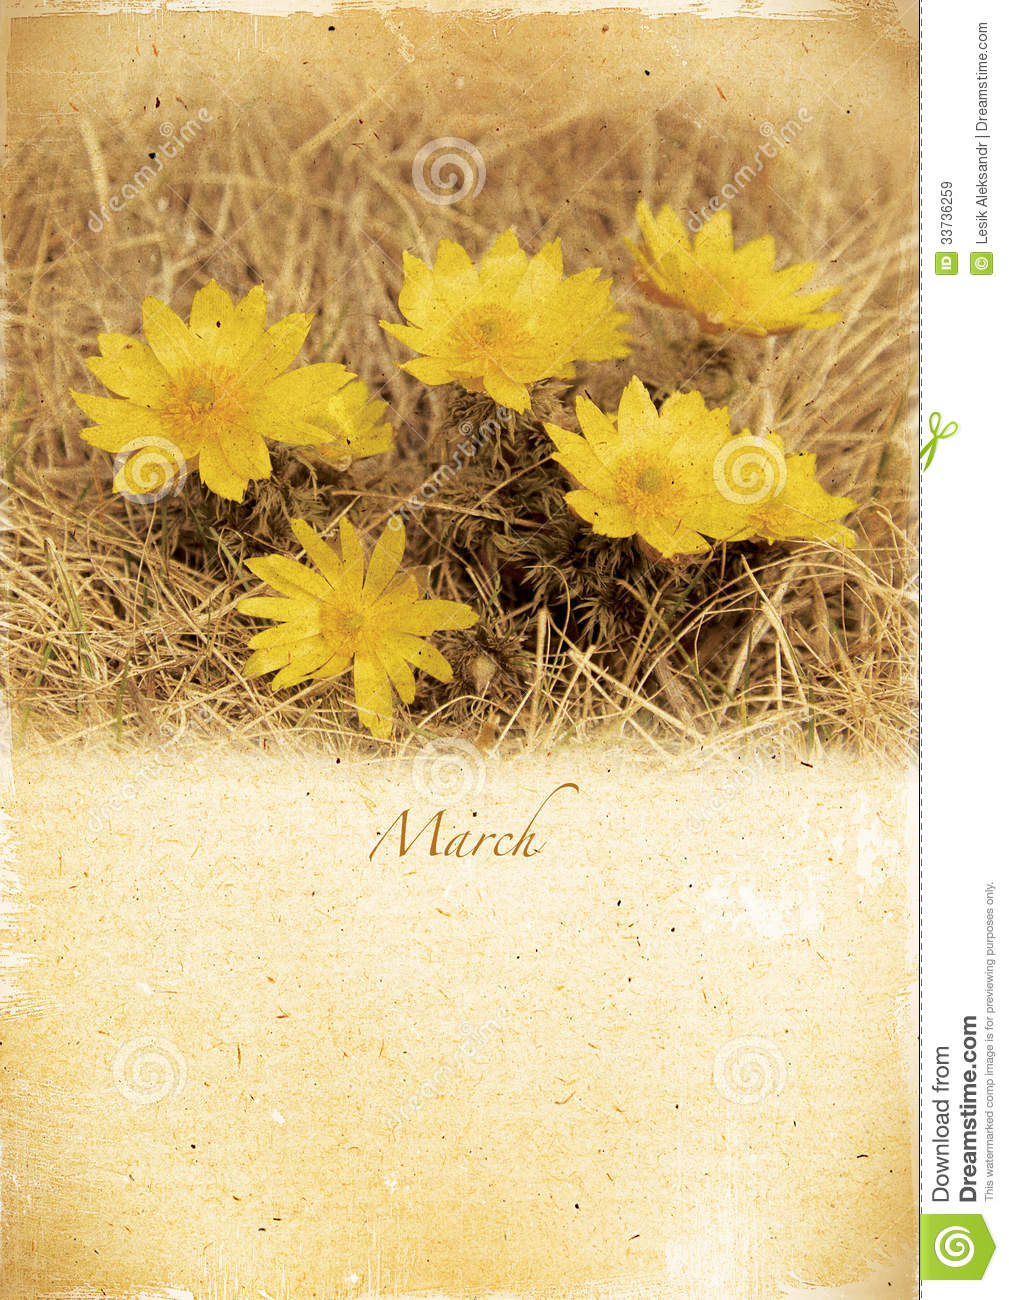 Xs Calendar April : Calendar retro march vintage spring landscape stock